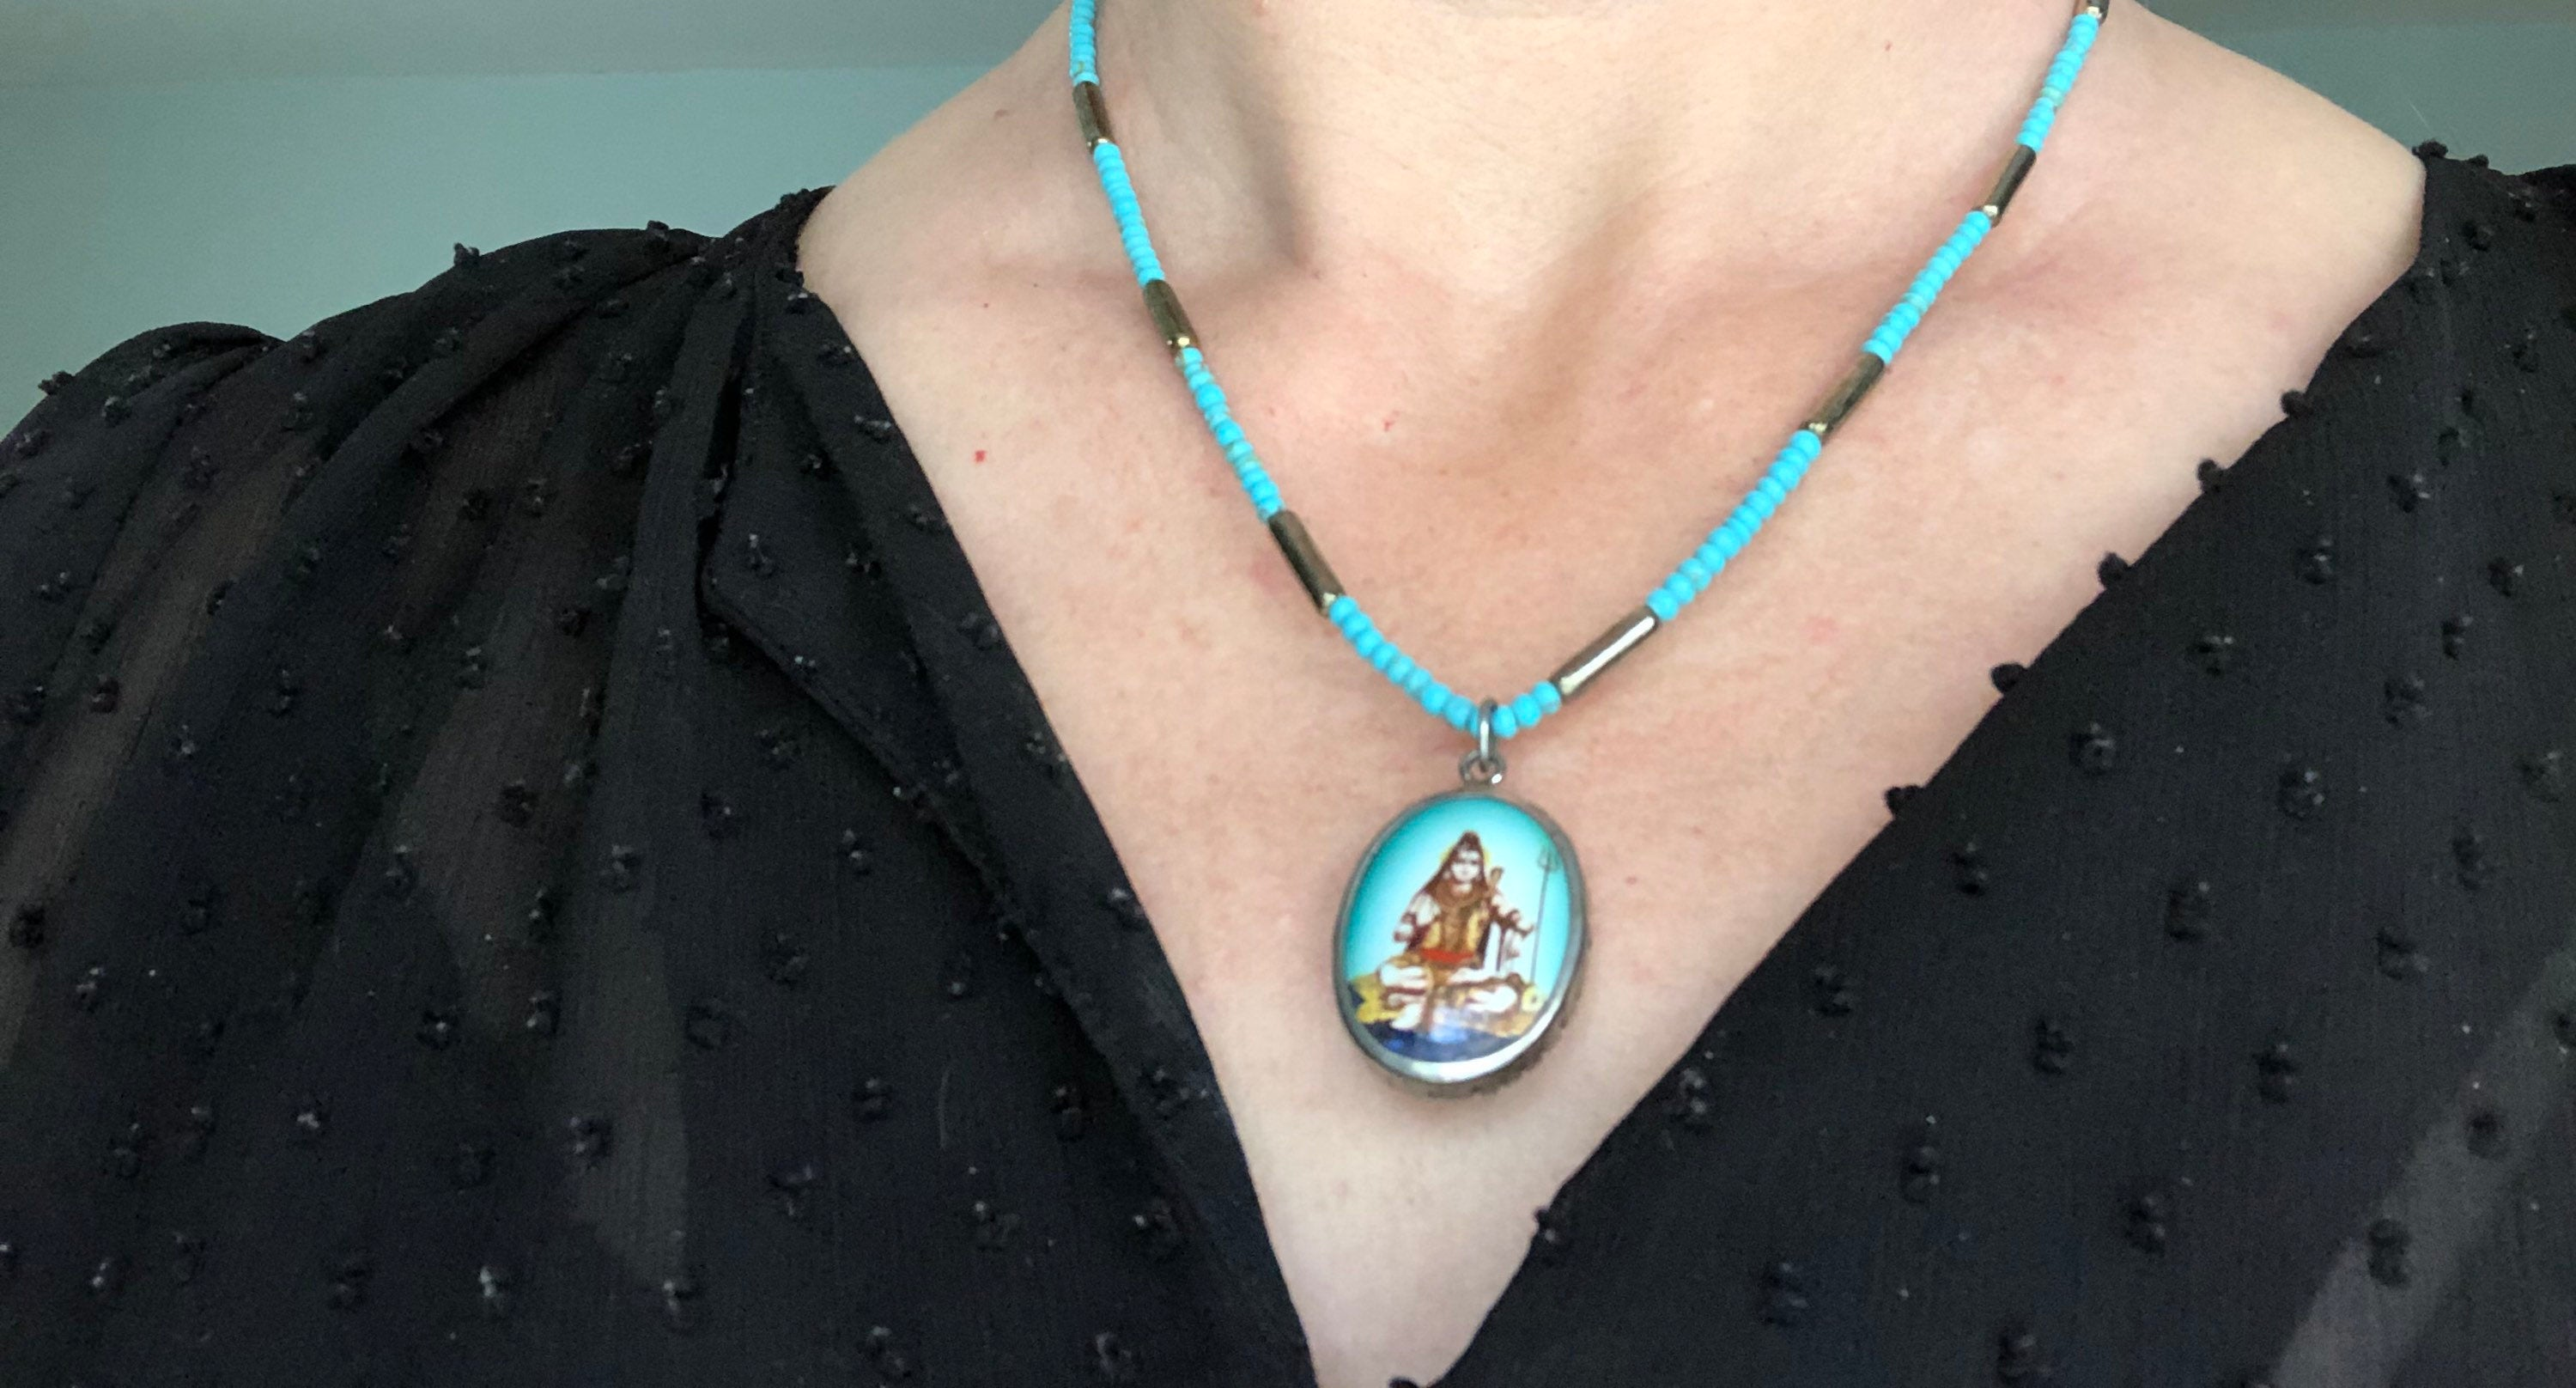 Turquoise and silver beaded necklace with oval deity charm, worn by model in black shirt.